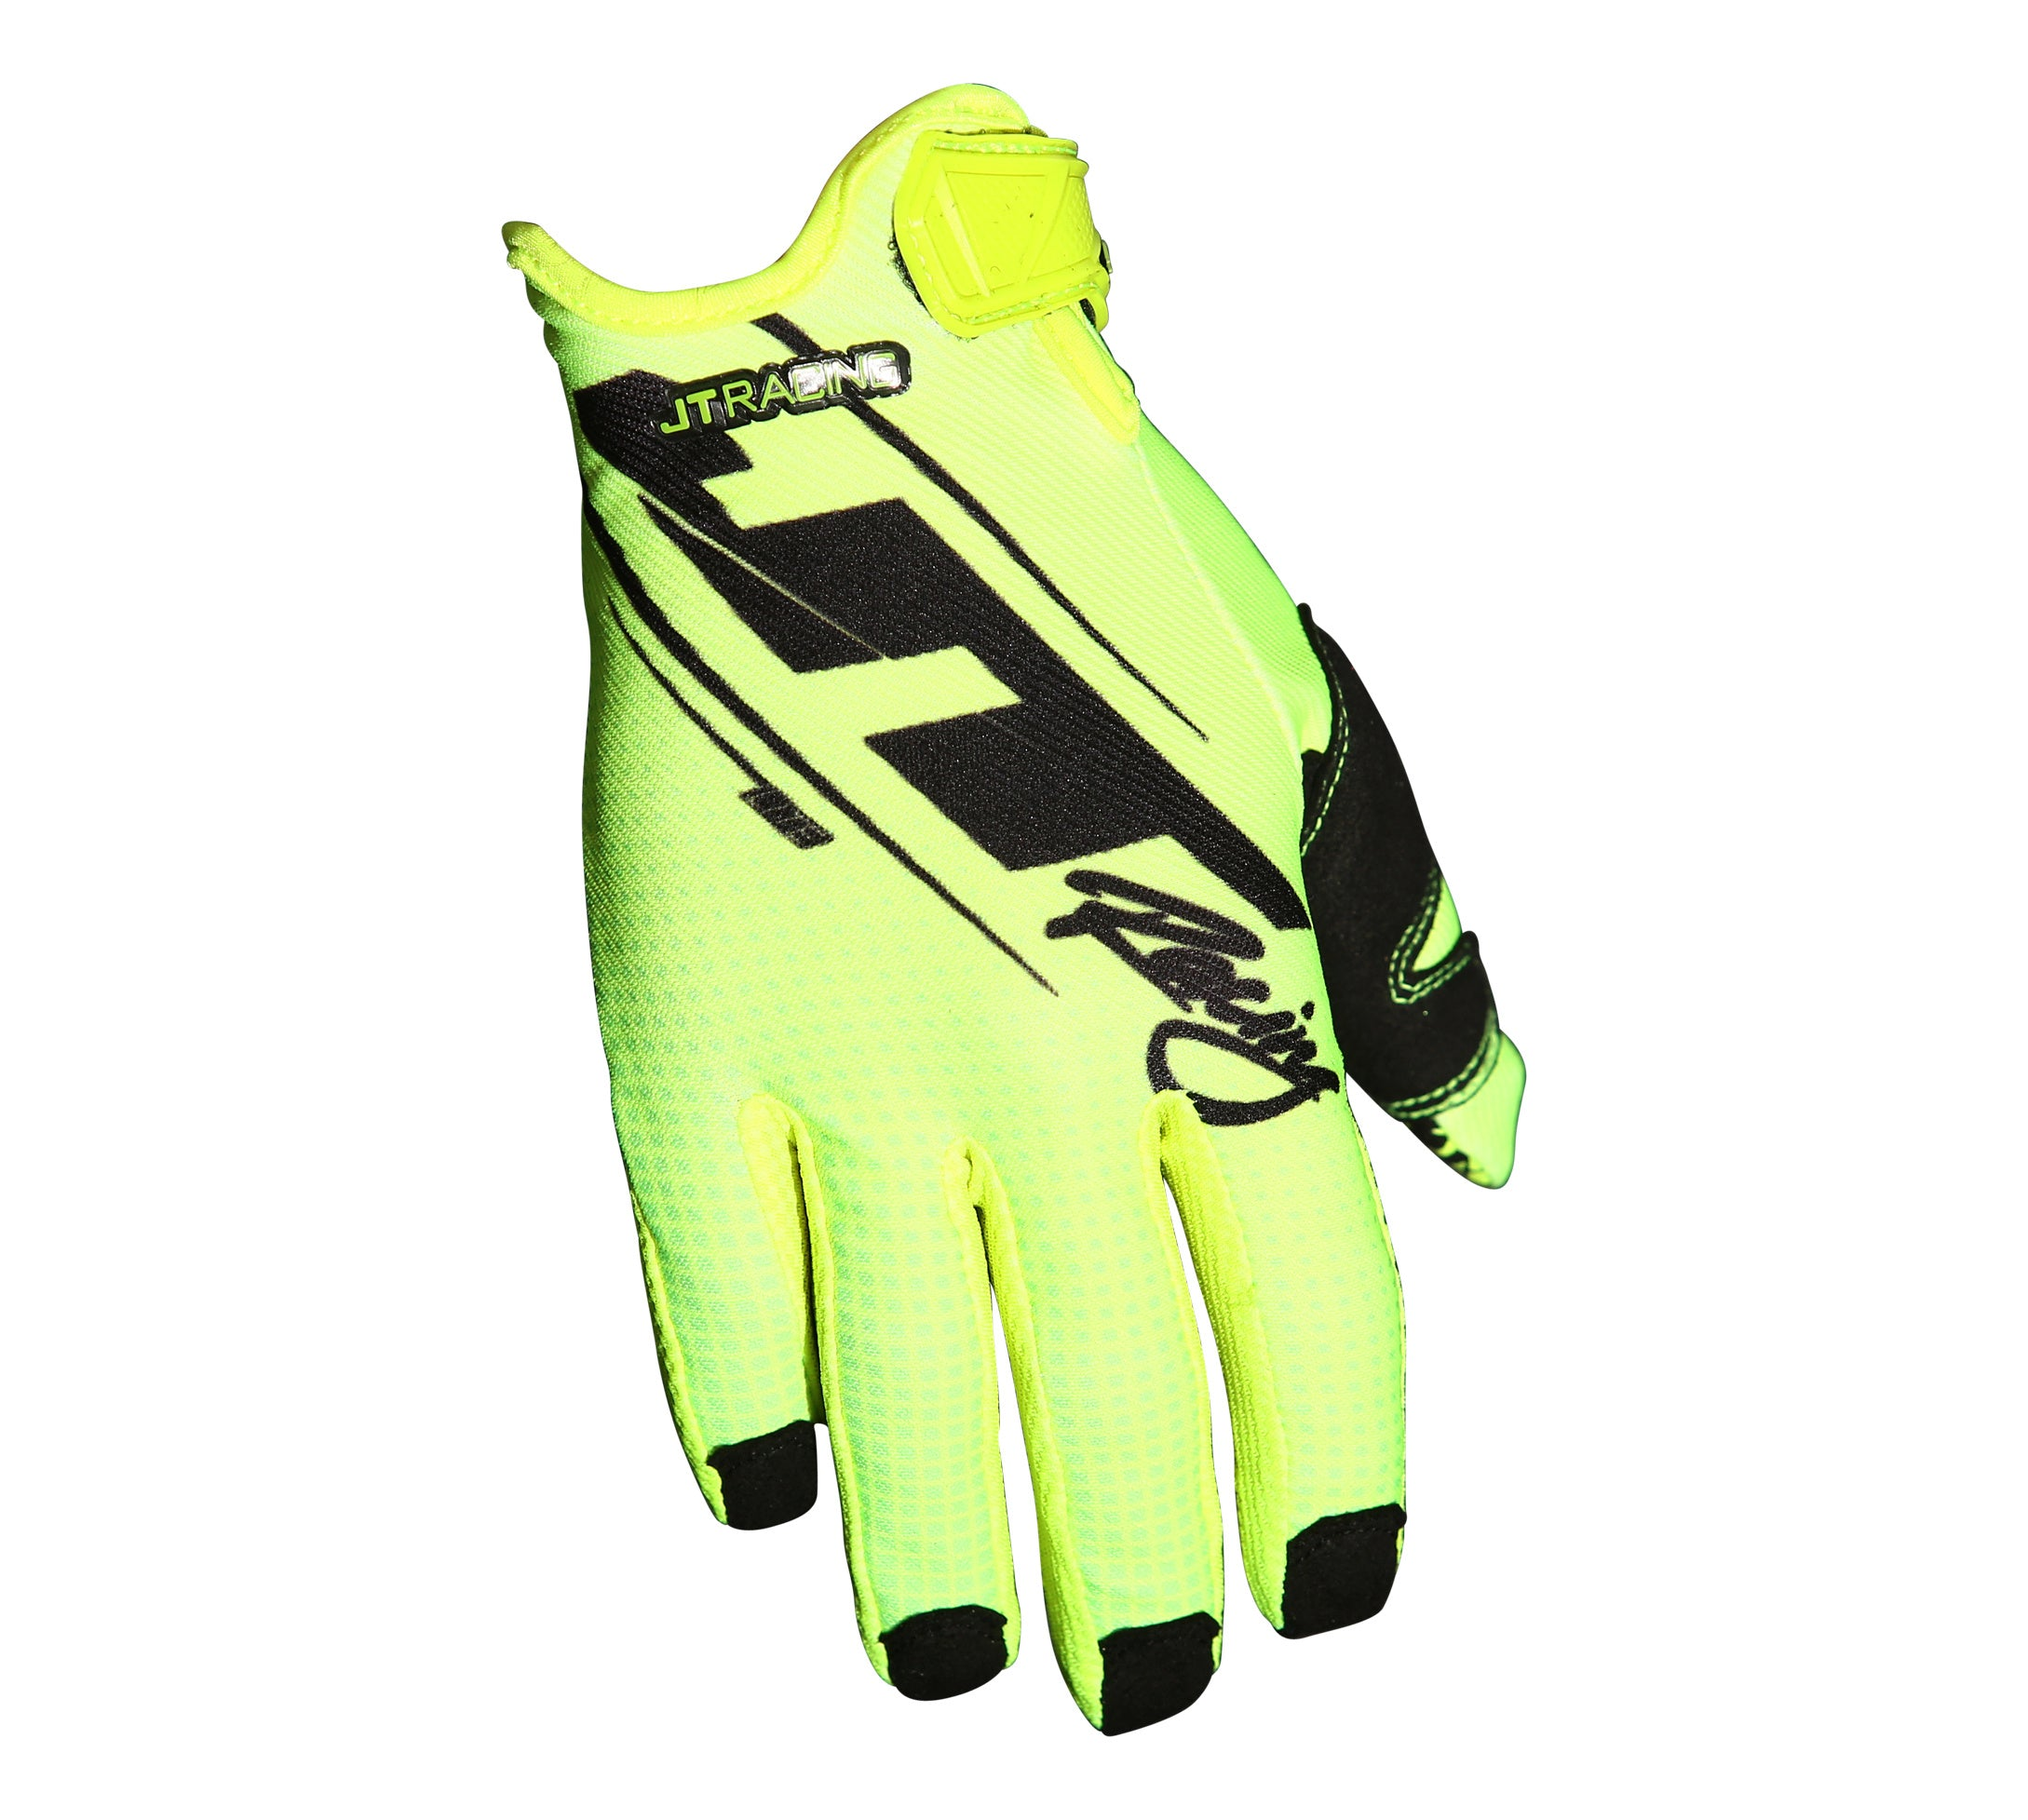 JT Racing USA-Lite16- Slasher Gloves, Neon Yellow